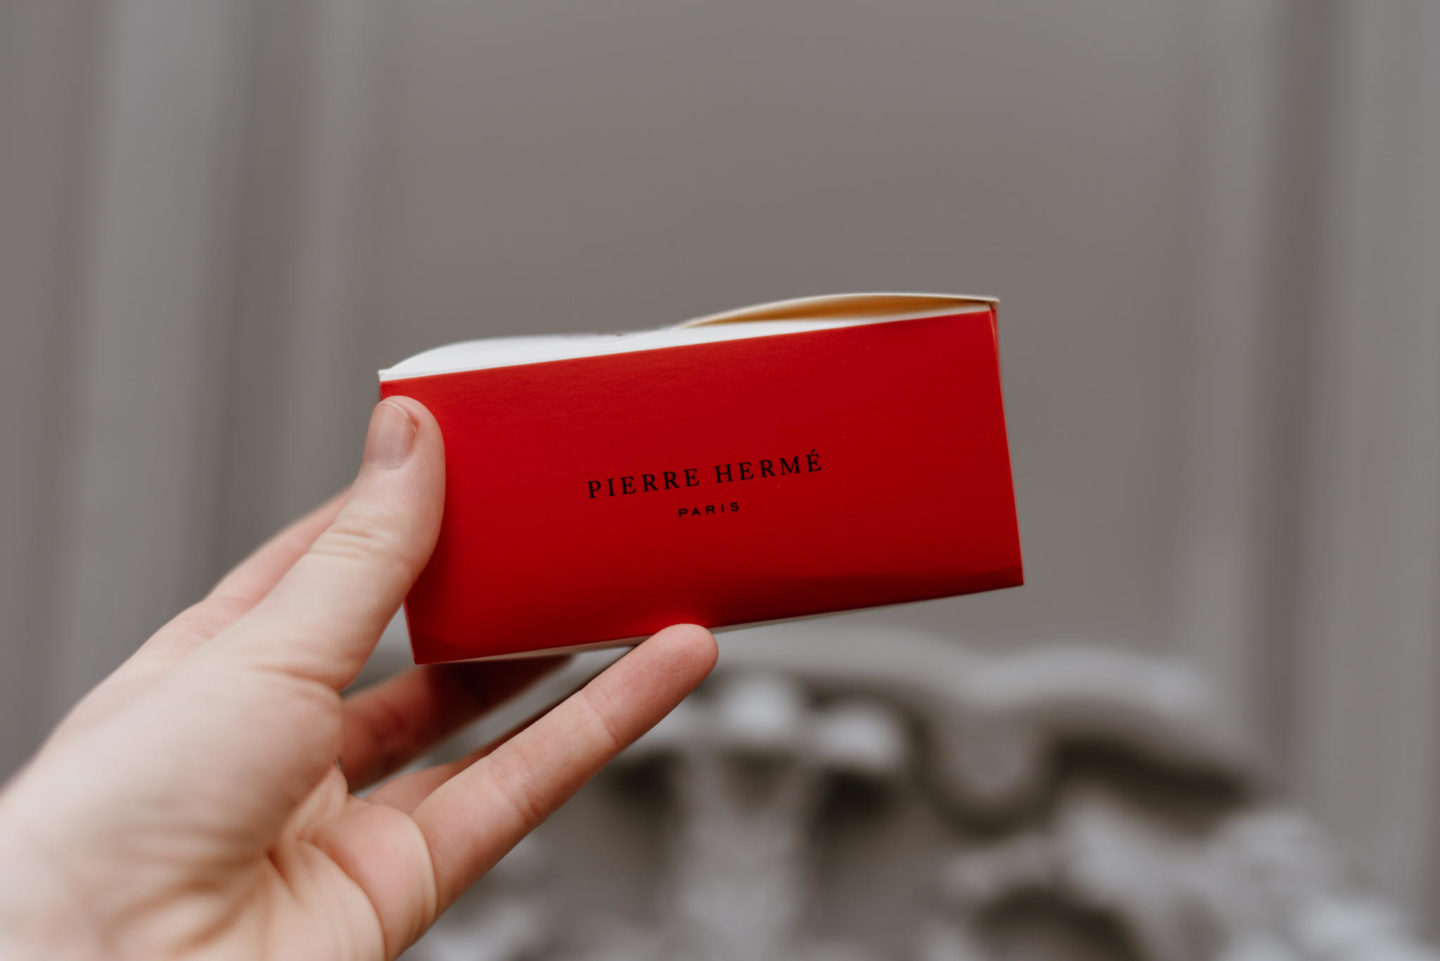 Red box from pierre hermé